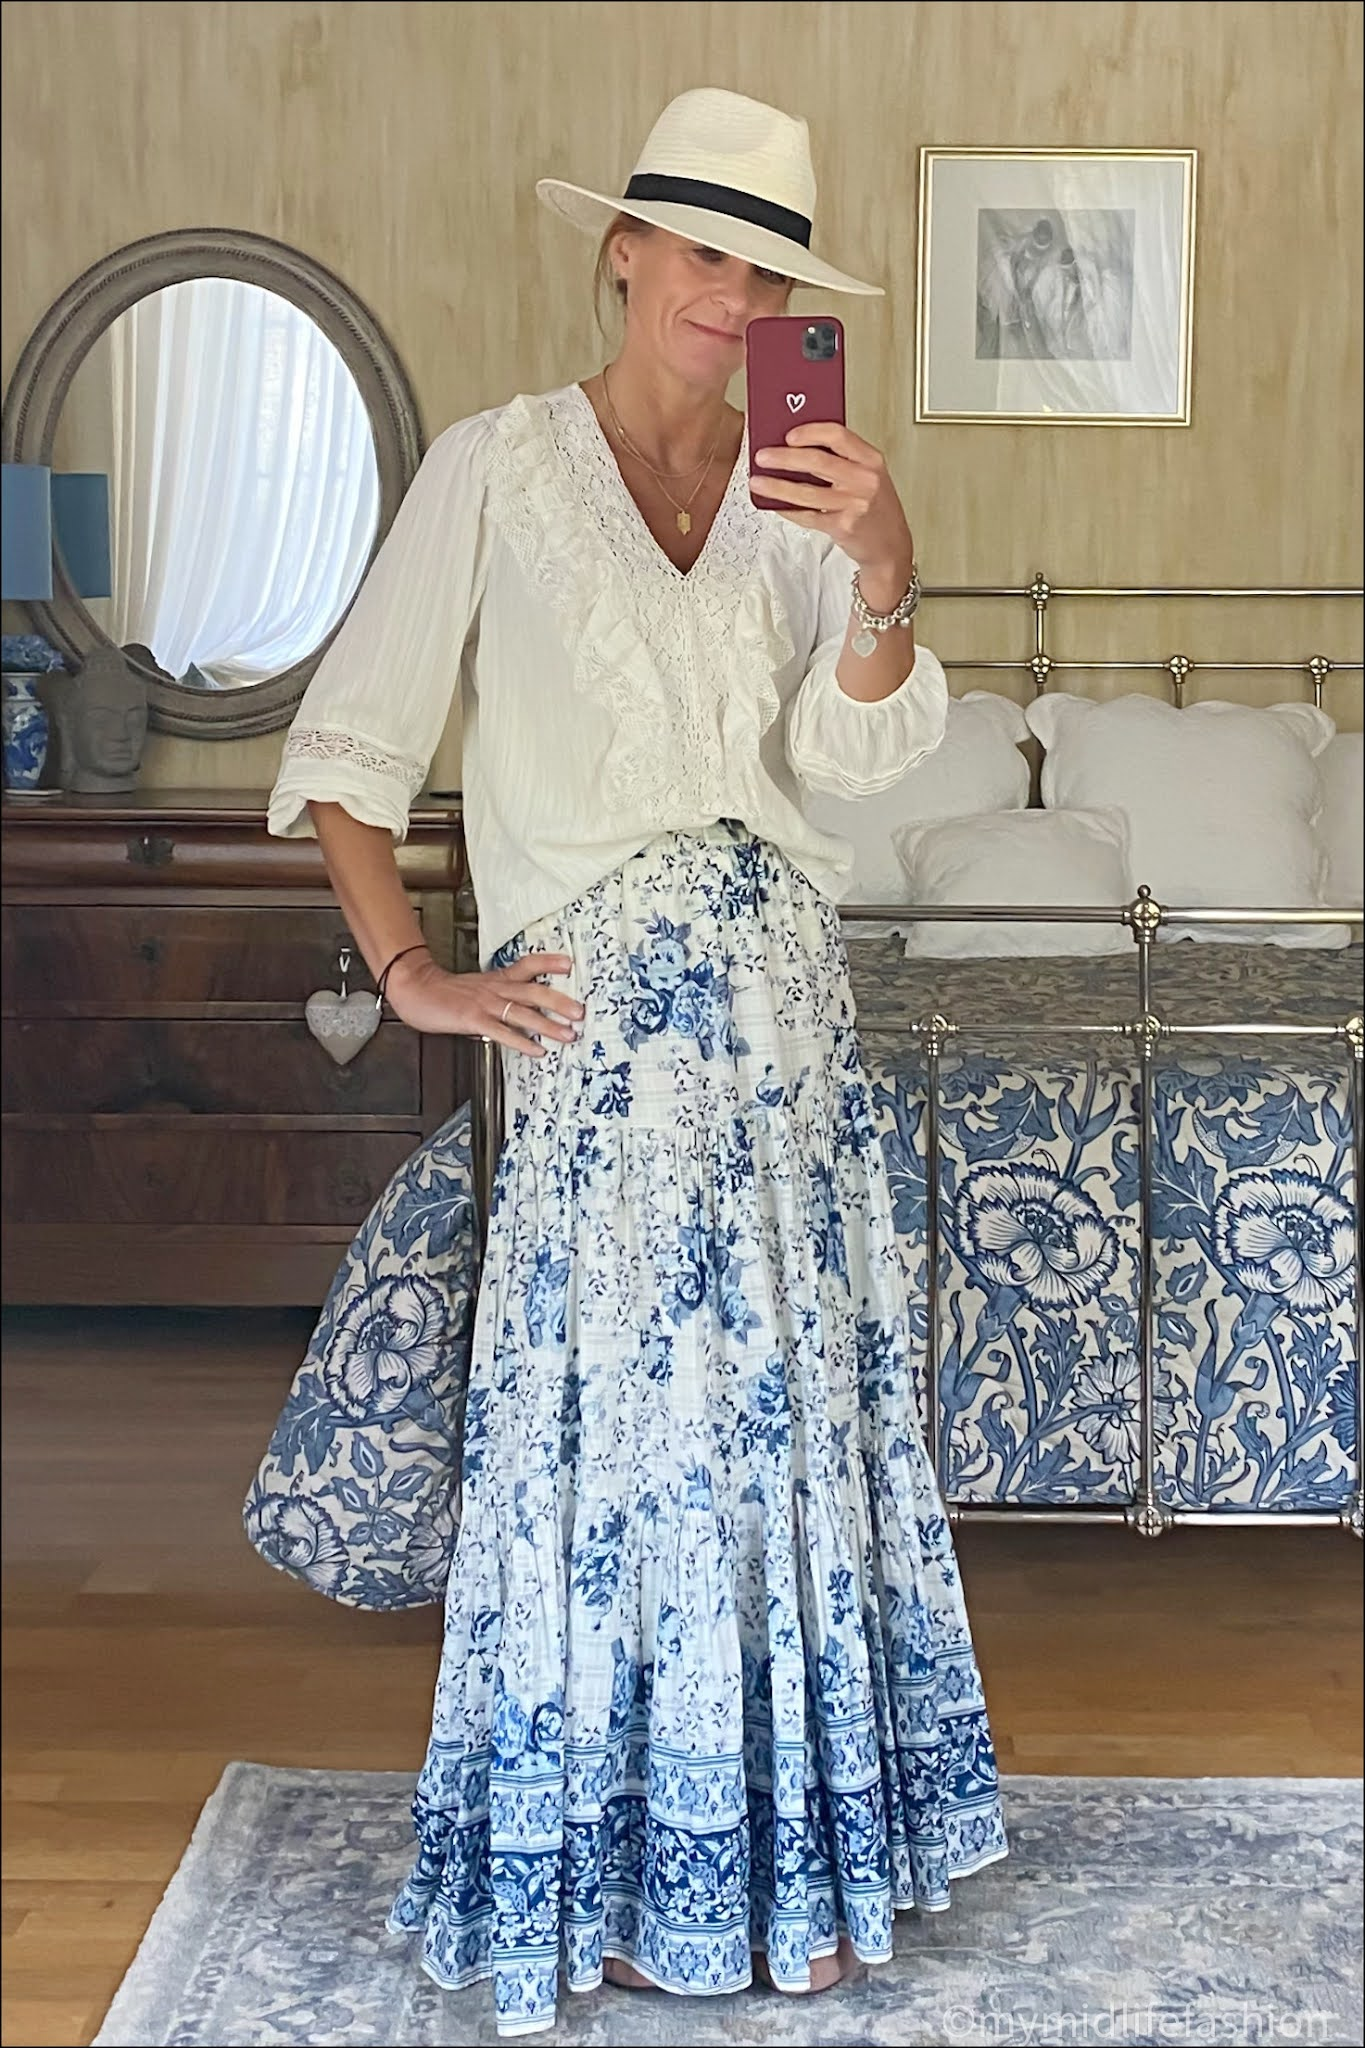 my midlife fashion, Zara floral tiered maxi skirt, Zara Panama hat, Zara lace blouse, h and m pointed cut out ballet flats